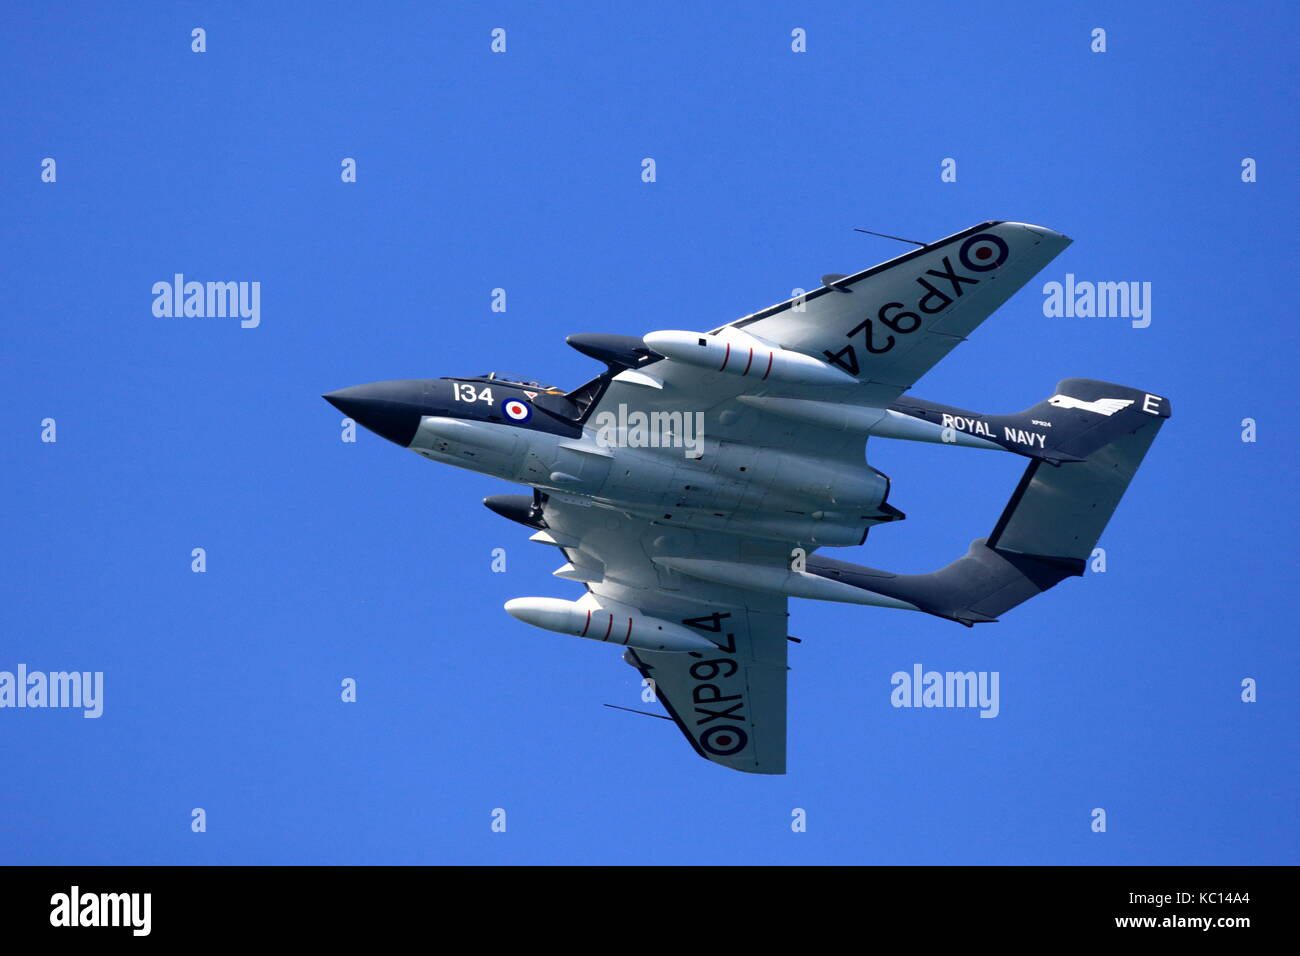 The de Havilland Sea Vixen twin boom jet fighter roars closely across the sky at the 2011 Bournemouth Air Festival, - Stock Image